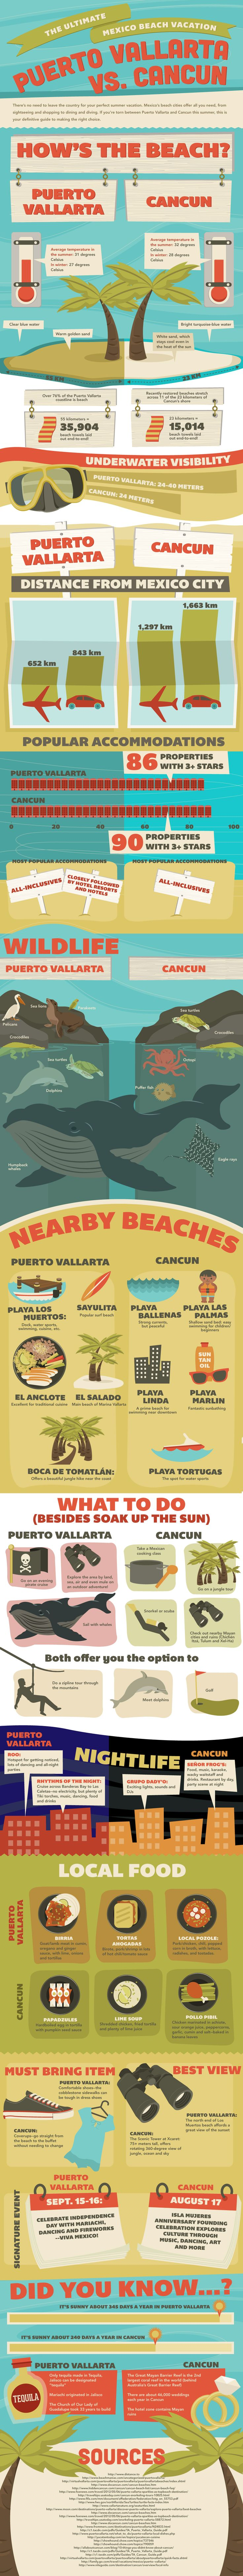 Puerto Vallarta Vs. Cancun #infographic - Wonderful, playful.. use of an infographic for travel and tourism.